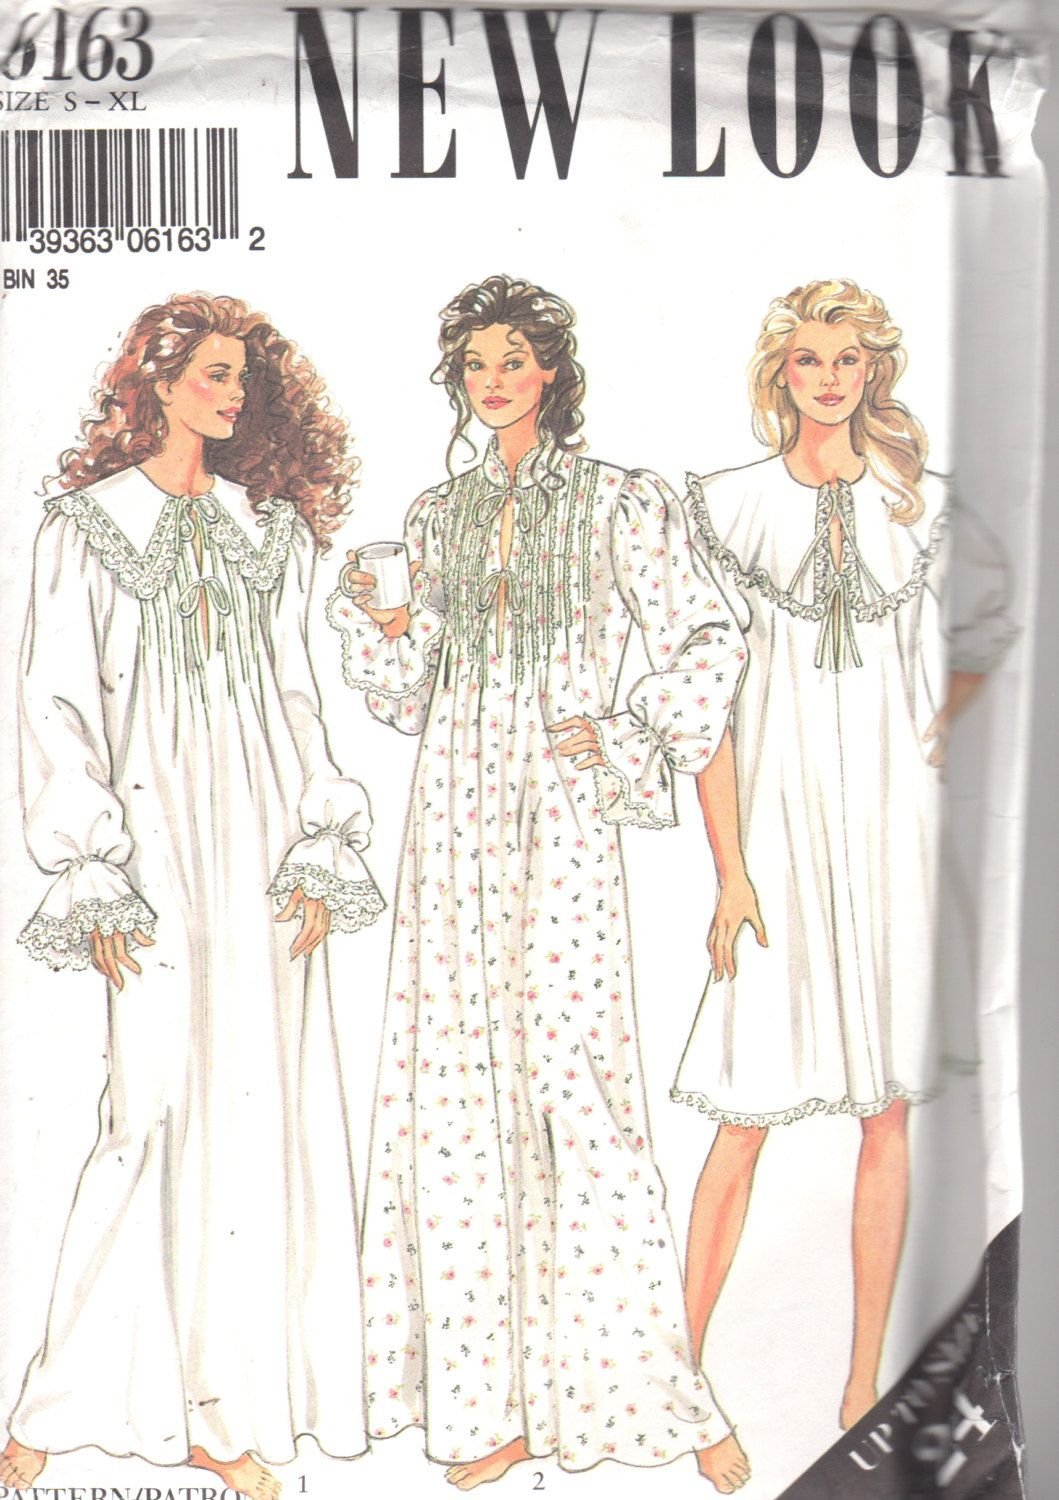 New Look 6163 Misses Victorian Style Nightgown Pattern Tucked Cape ...